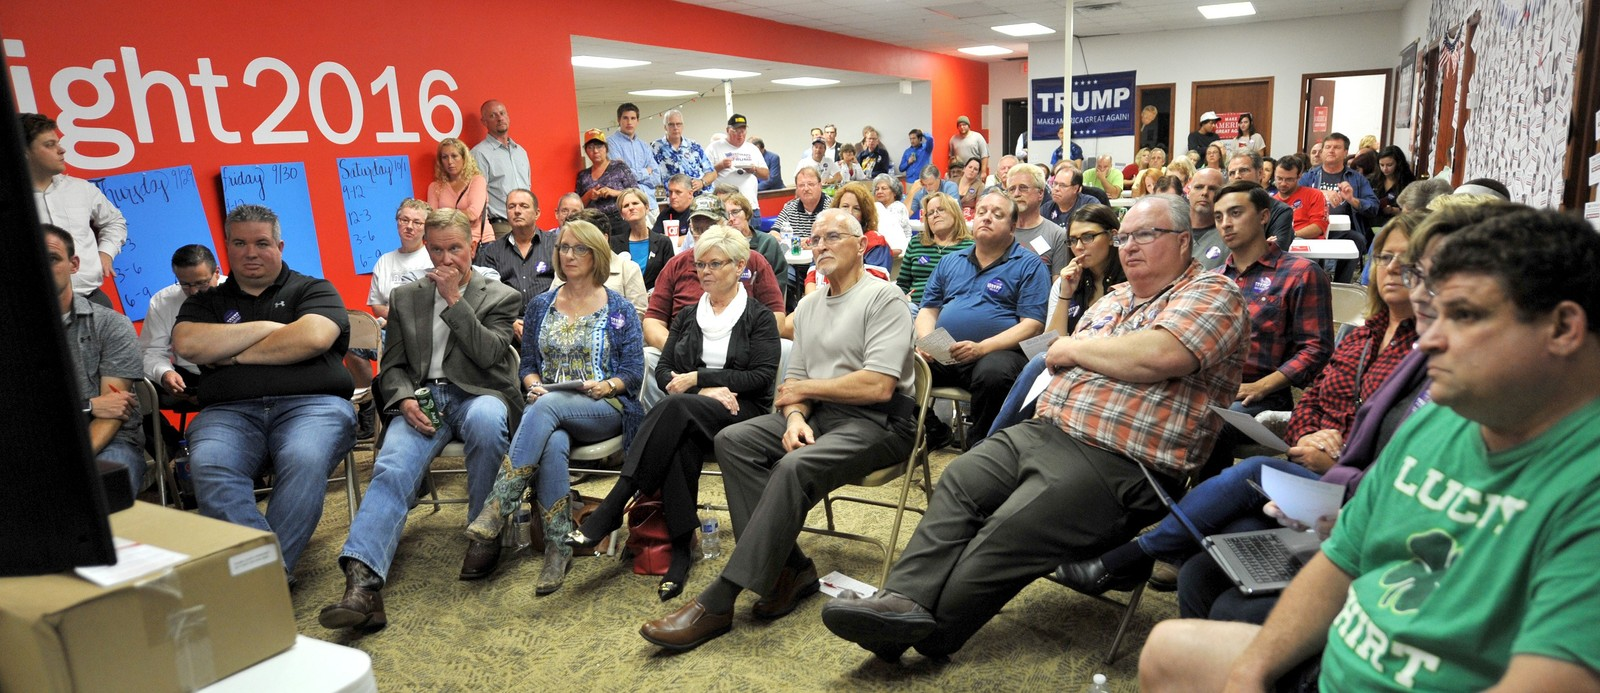 US-PRESIDENTIAL-DEBATE-WATCH-PARTY-IN-URBANDALE,-IOWA. URBANDALE, IA - SEPTEMBER 26: Supporters of Republican Presidential candidate Donald Trump listen to the first of three presidential debates, on September 26, 2016 at the Trump headquarters in Urbandale, Iowa. People across the country tuned in as Republican Presidential candidate Donald Trump and Democratic candidate Hillary Clinton participated in their first debate. Steve Pope/Getty Images/AFP == FOR NEWSPAPERS, INTERNET, TELCOS & TELEVISION USE ONLY == Presidential Debate Watch Party in Urbandale, Iowa.